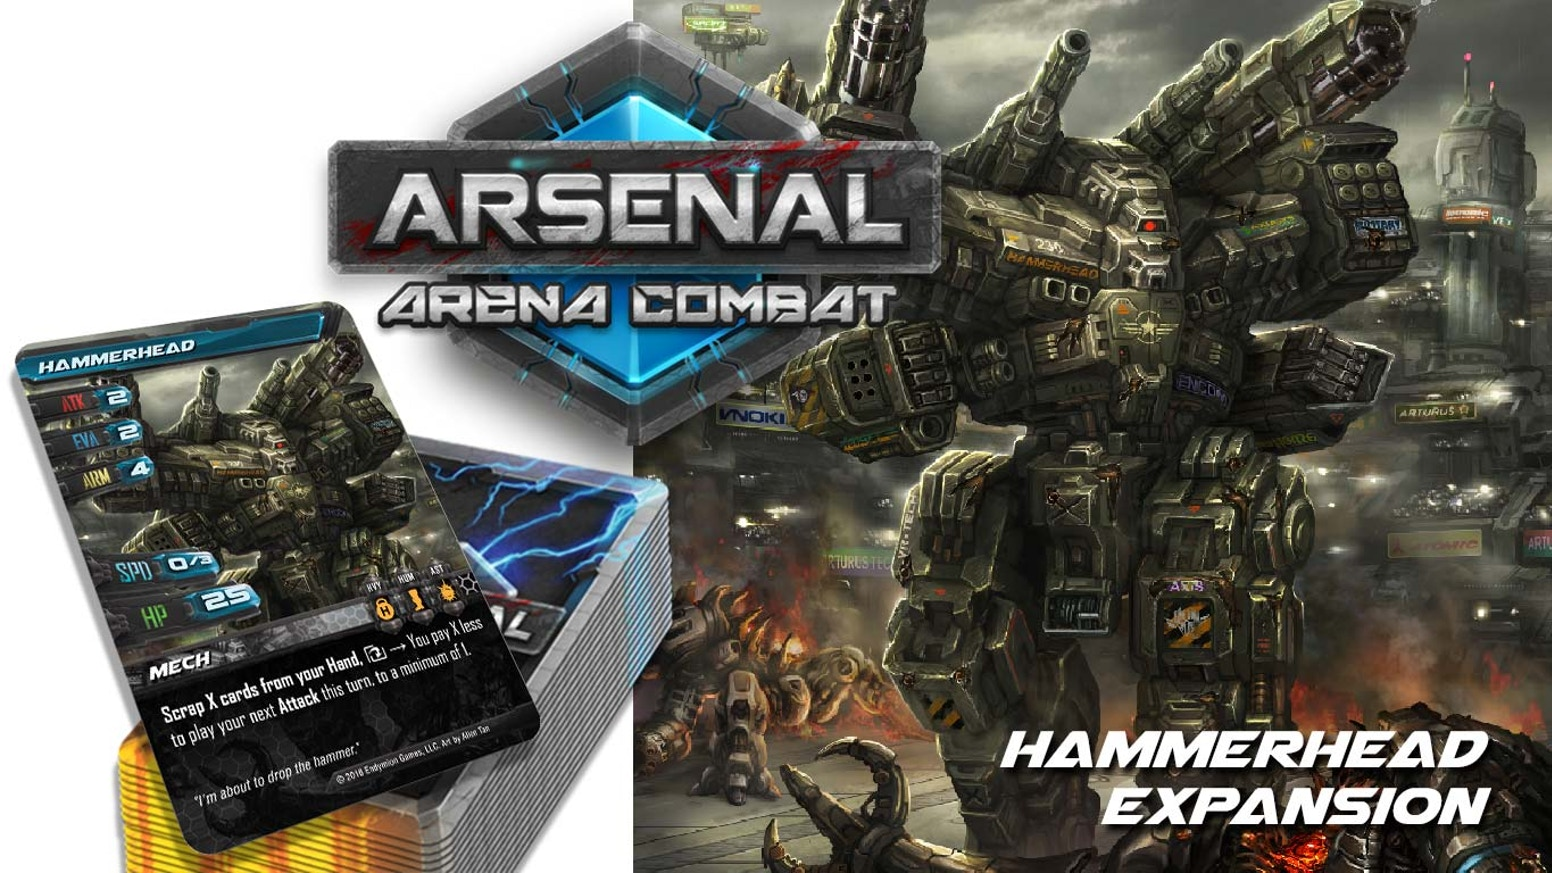 Arsenal: Arena Combat - Hammerhead Expansion by Shane Butler